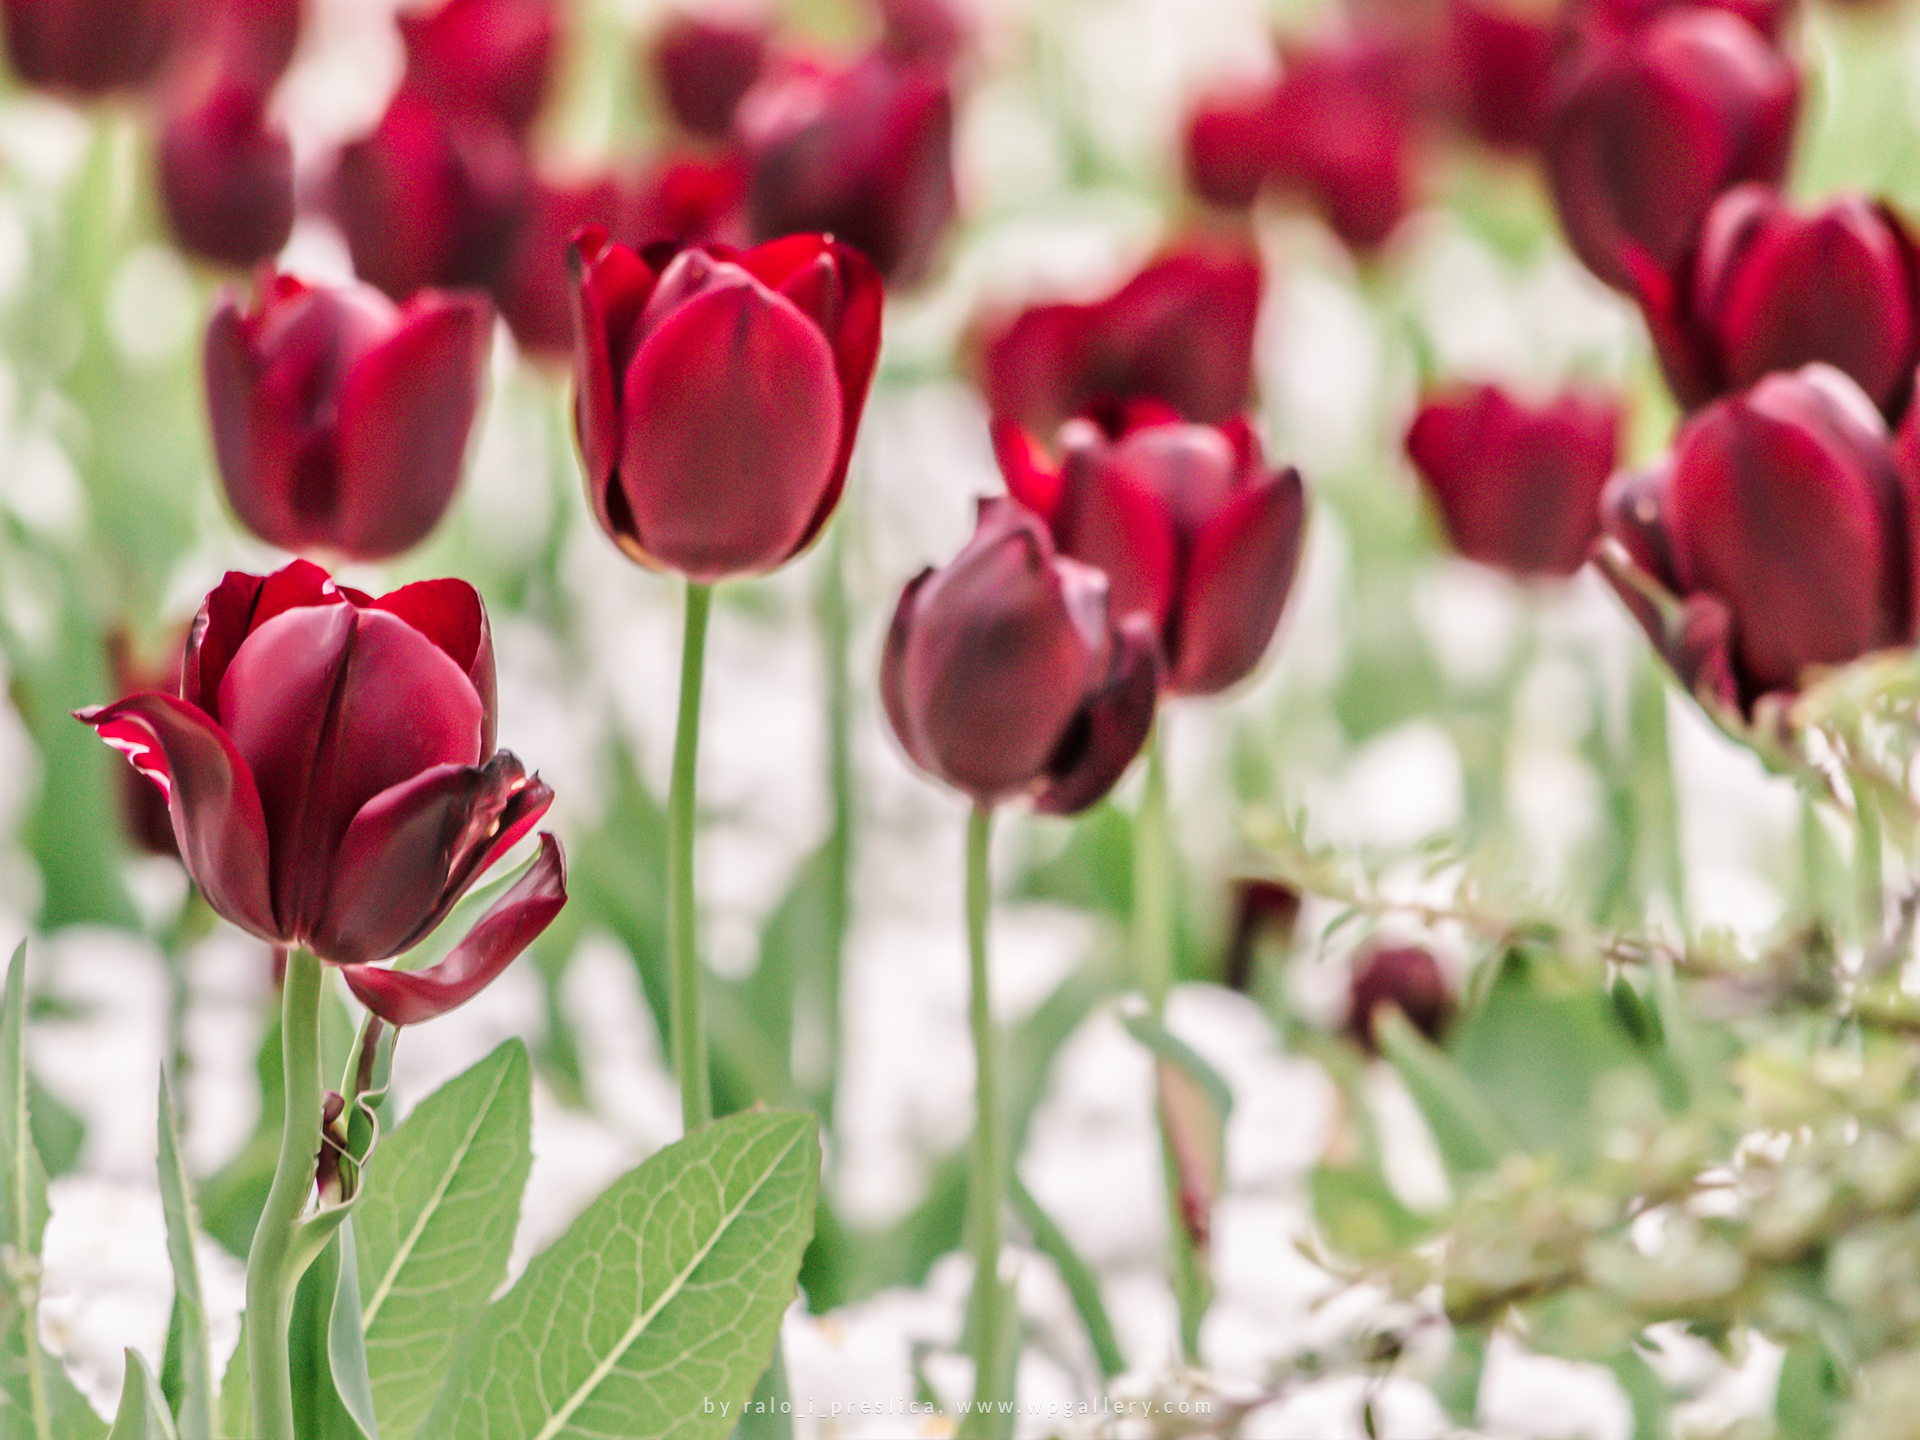 Red Tulip Field by ralo_i_preslica